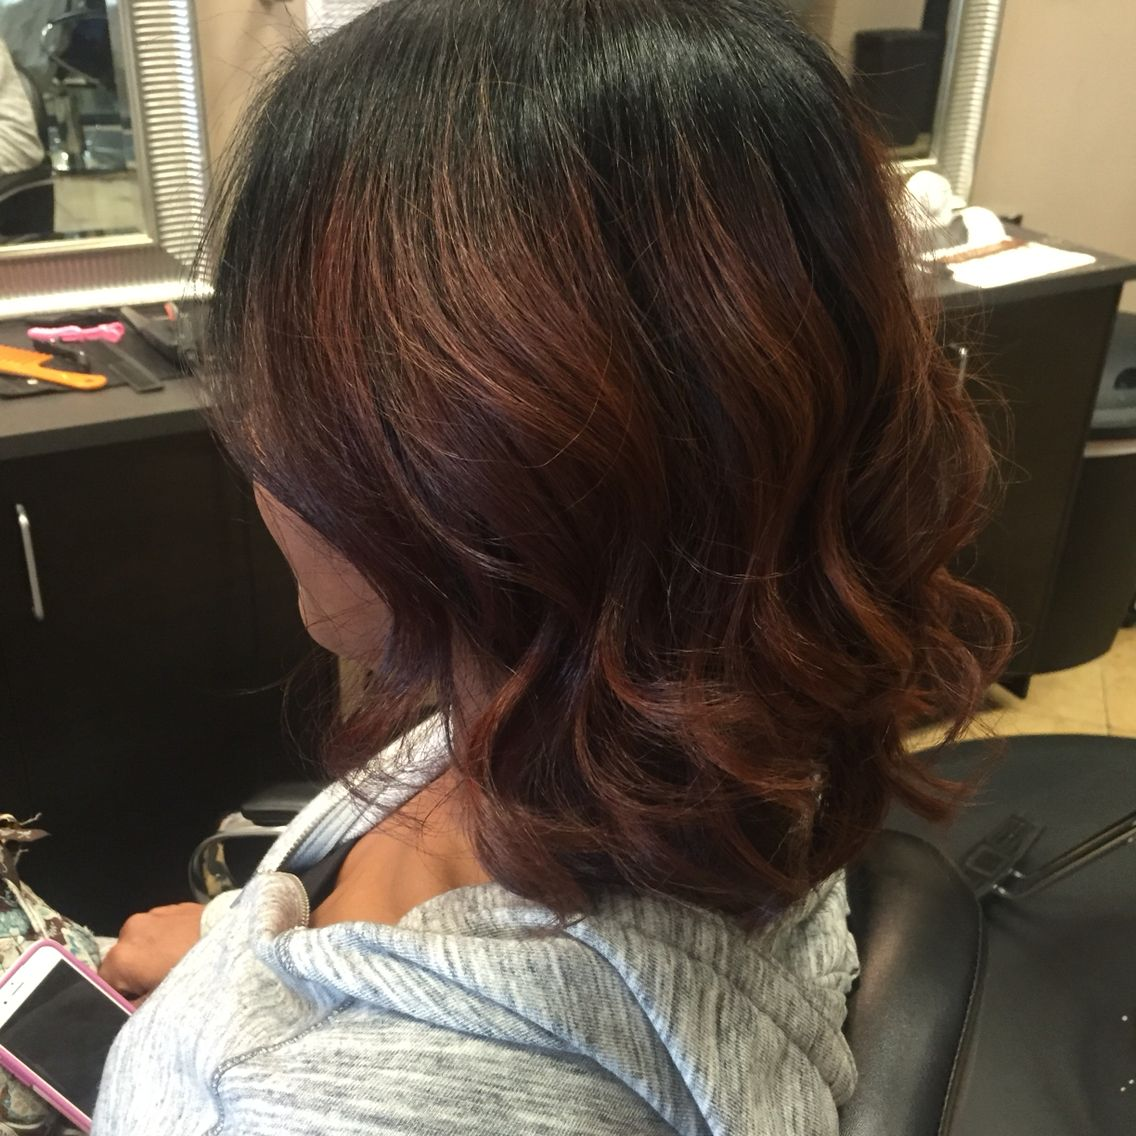 Silk press on natural hair. Cut into a bob. Red auburn